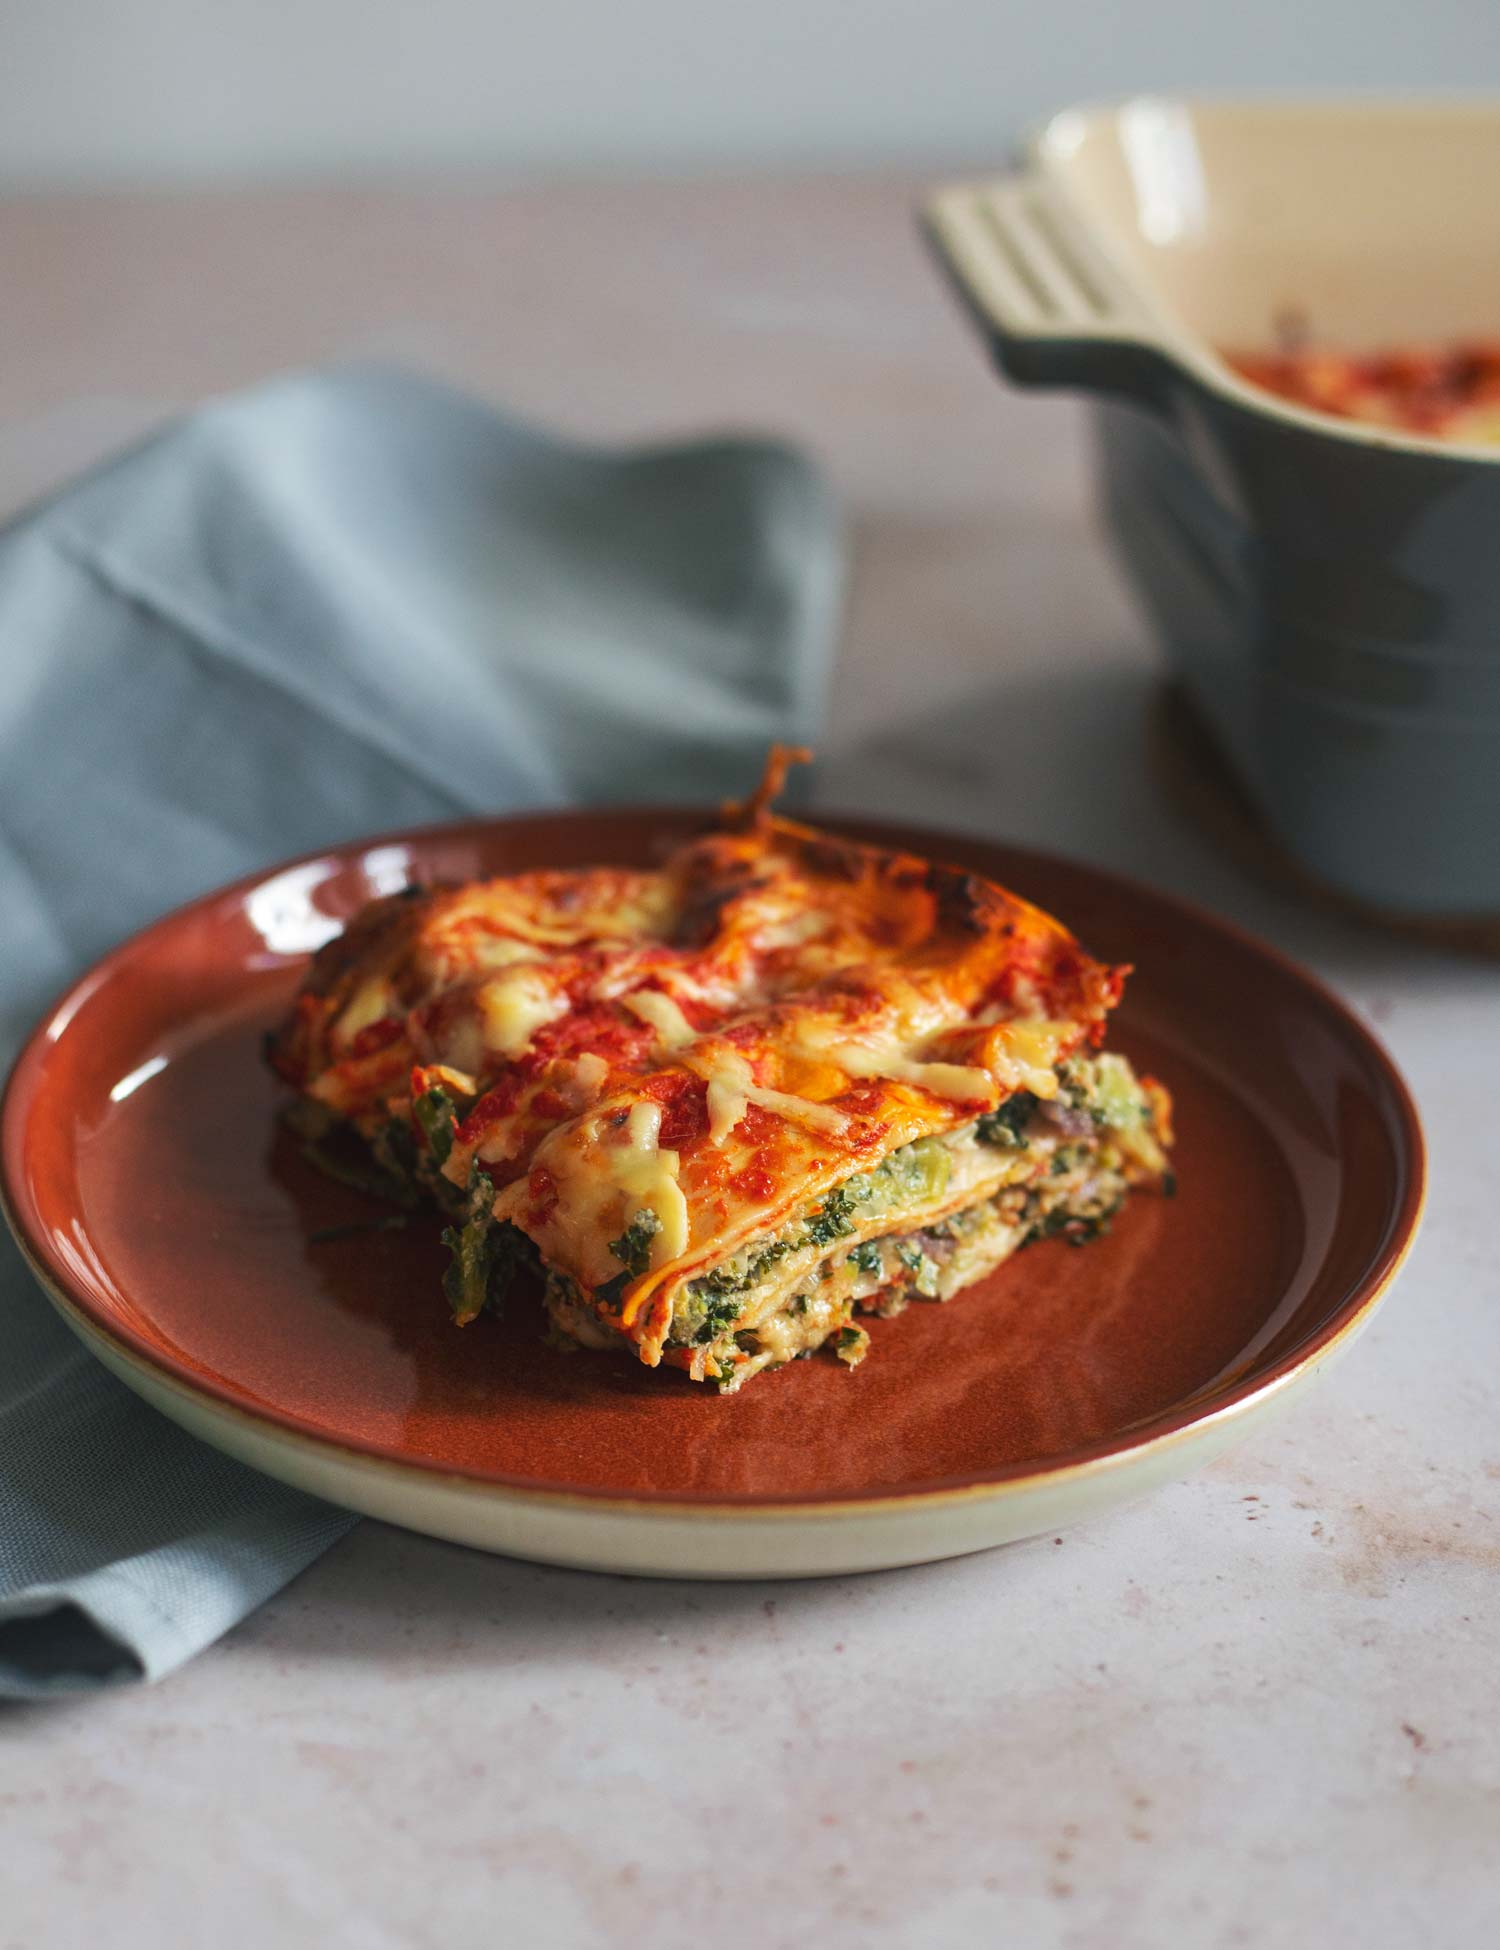 A slice of lasagne with a baking dish with more lasagne in the background